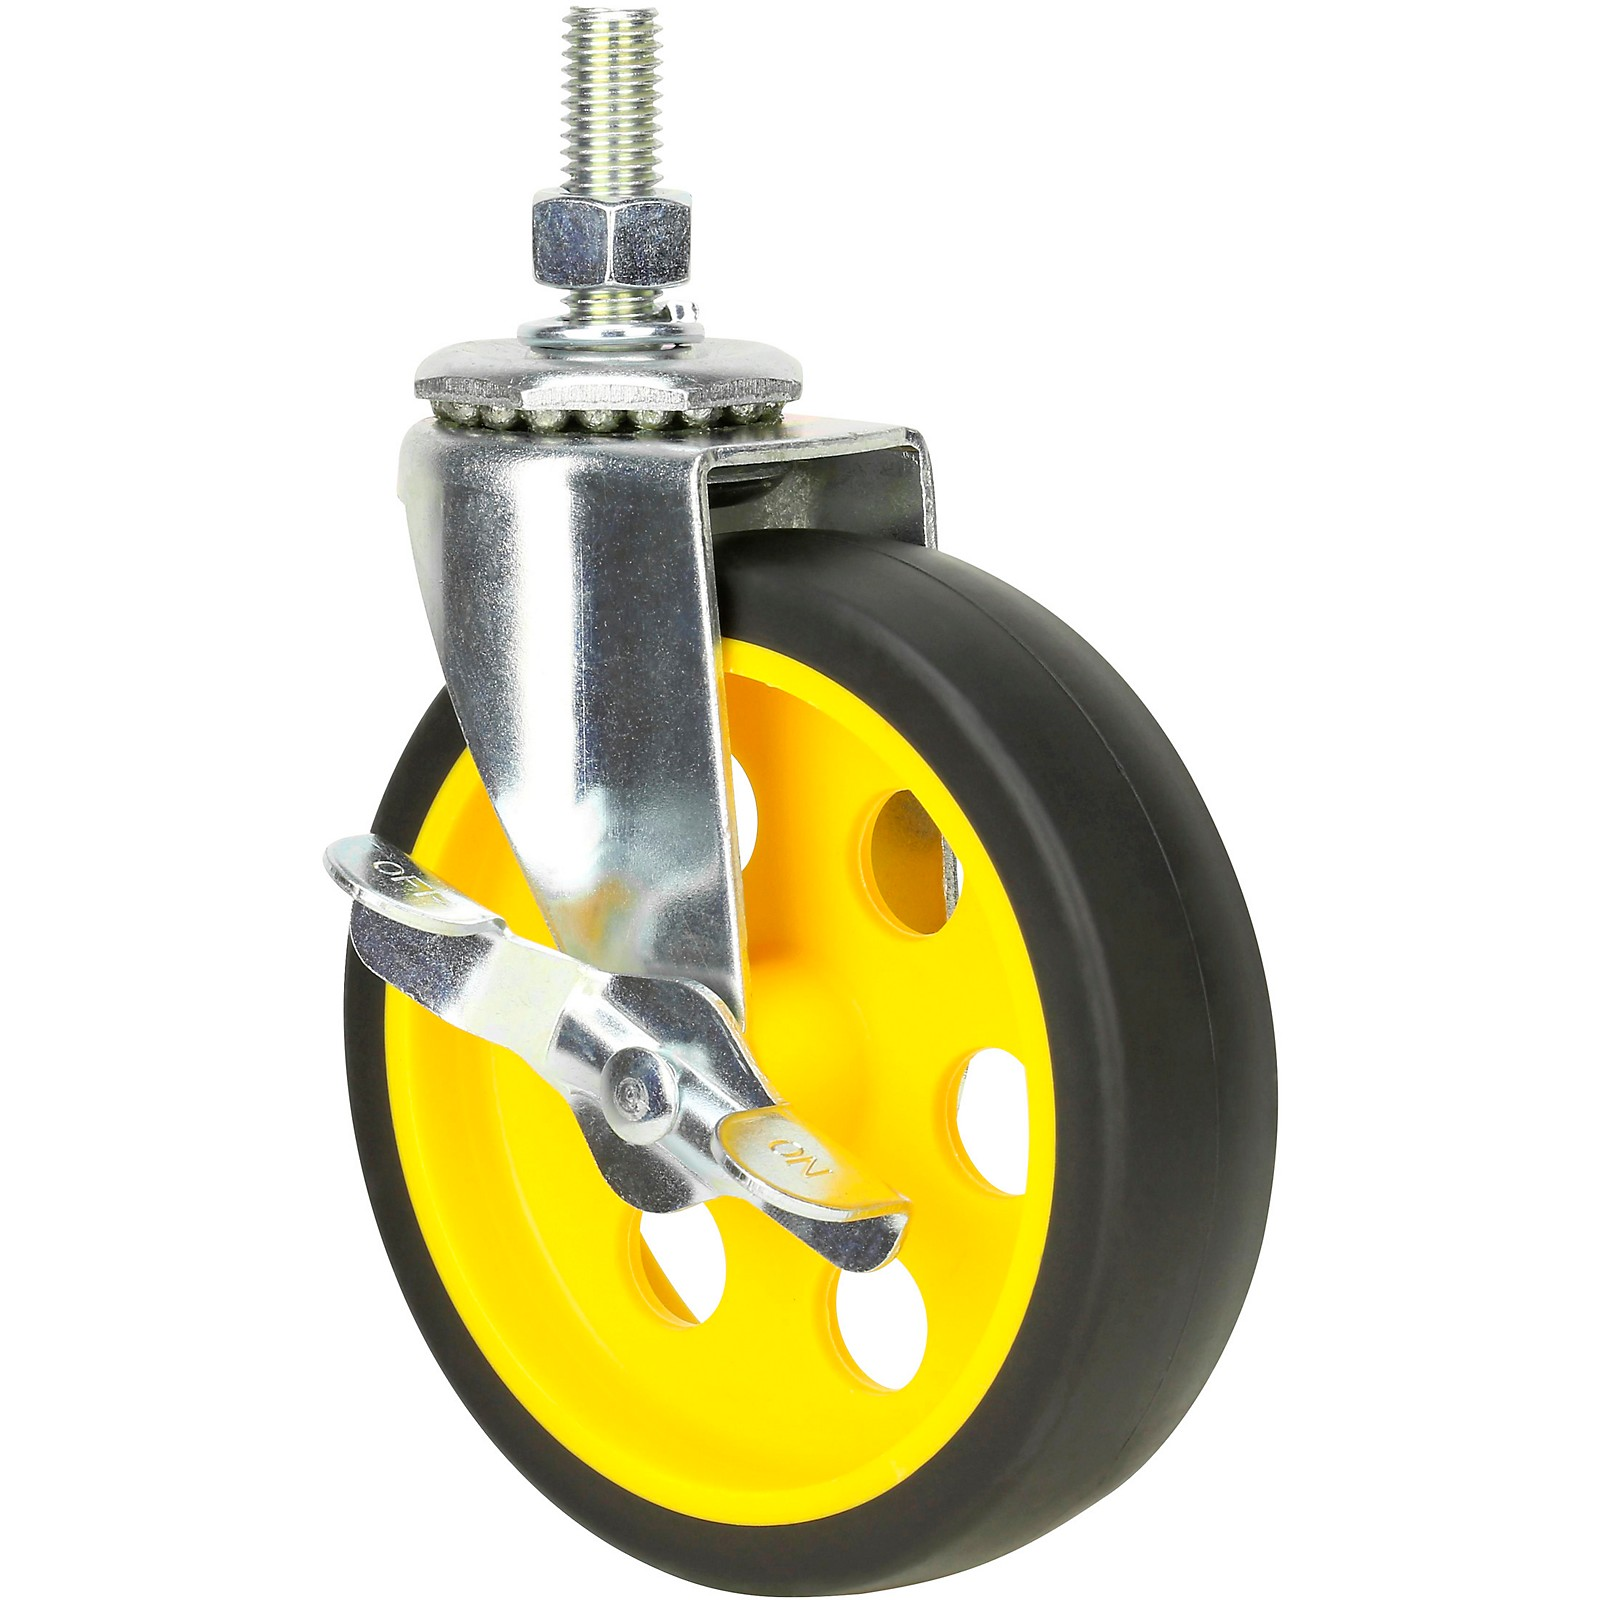 Rock N Roller RCSTR5X125 5in. G-Force Caster with Brake For R8, R10 Carts - 2-Pack